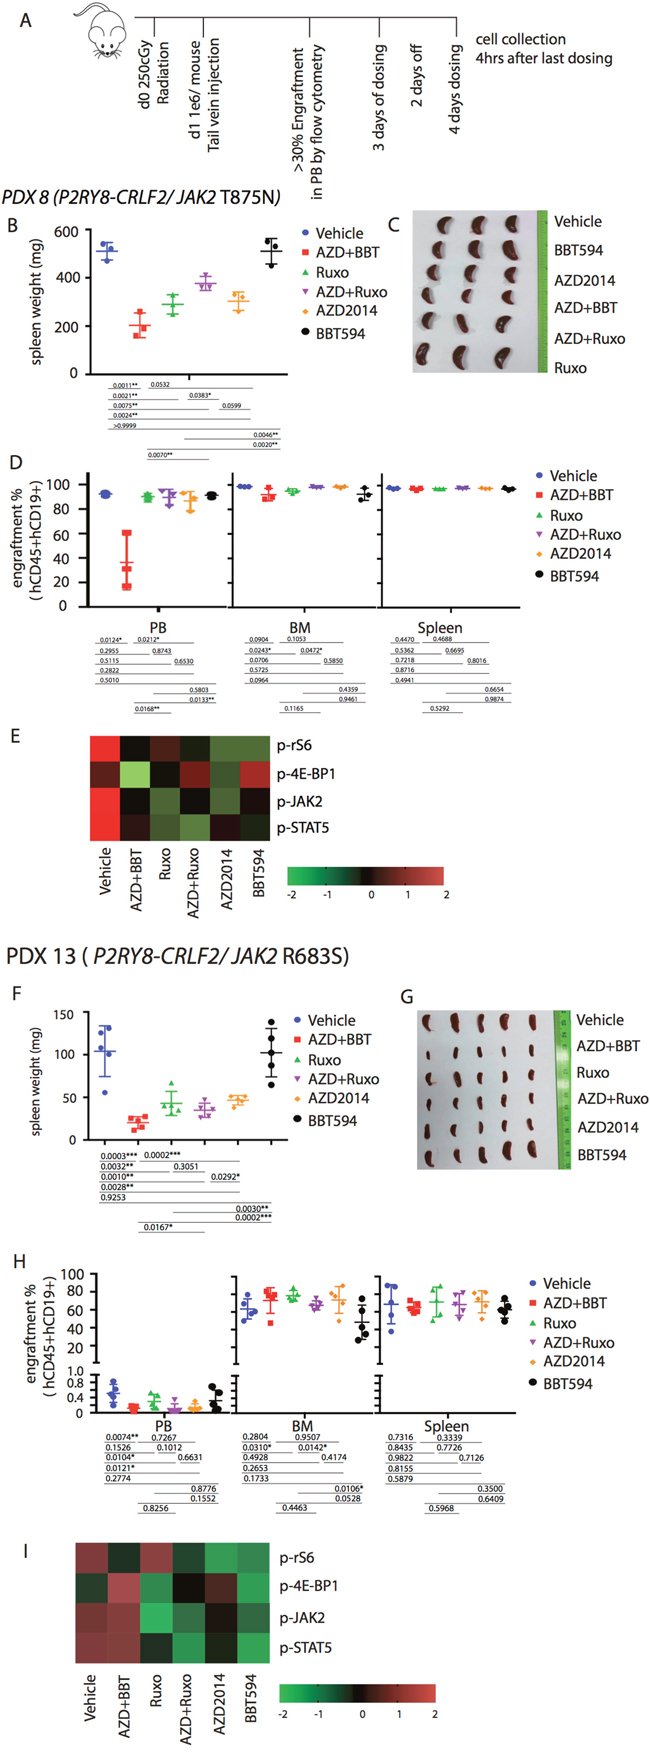 Anti-leukemia efficacy of dual JAK2 and mTOR inhibition in vivo in the P2RY8-CRLF2/JAK2 mutation PDX.